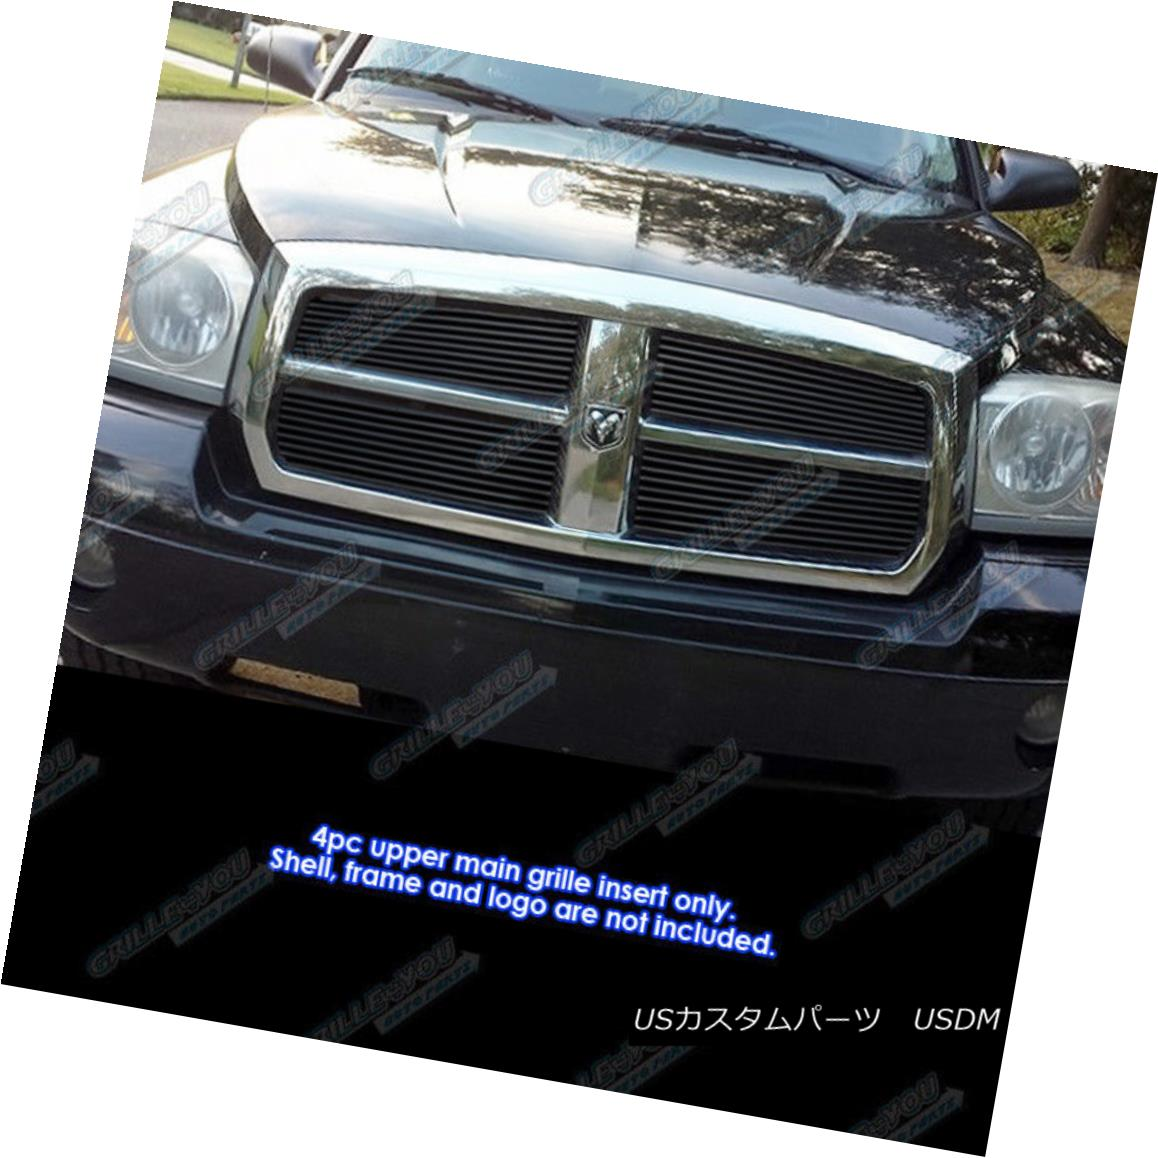 グリル Fits 2005-2007 Dodge Dakota Black Billet Grille Grill Insert 2005-2007 Dodge Dakota Black Billetグリルグリルインサートに適合